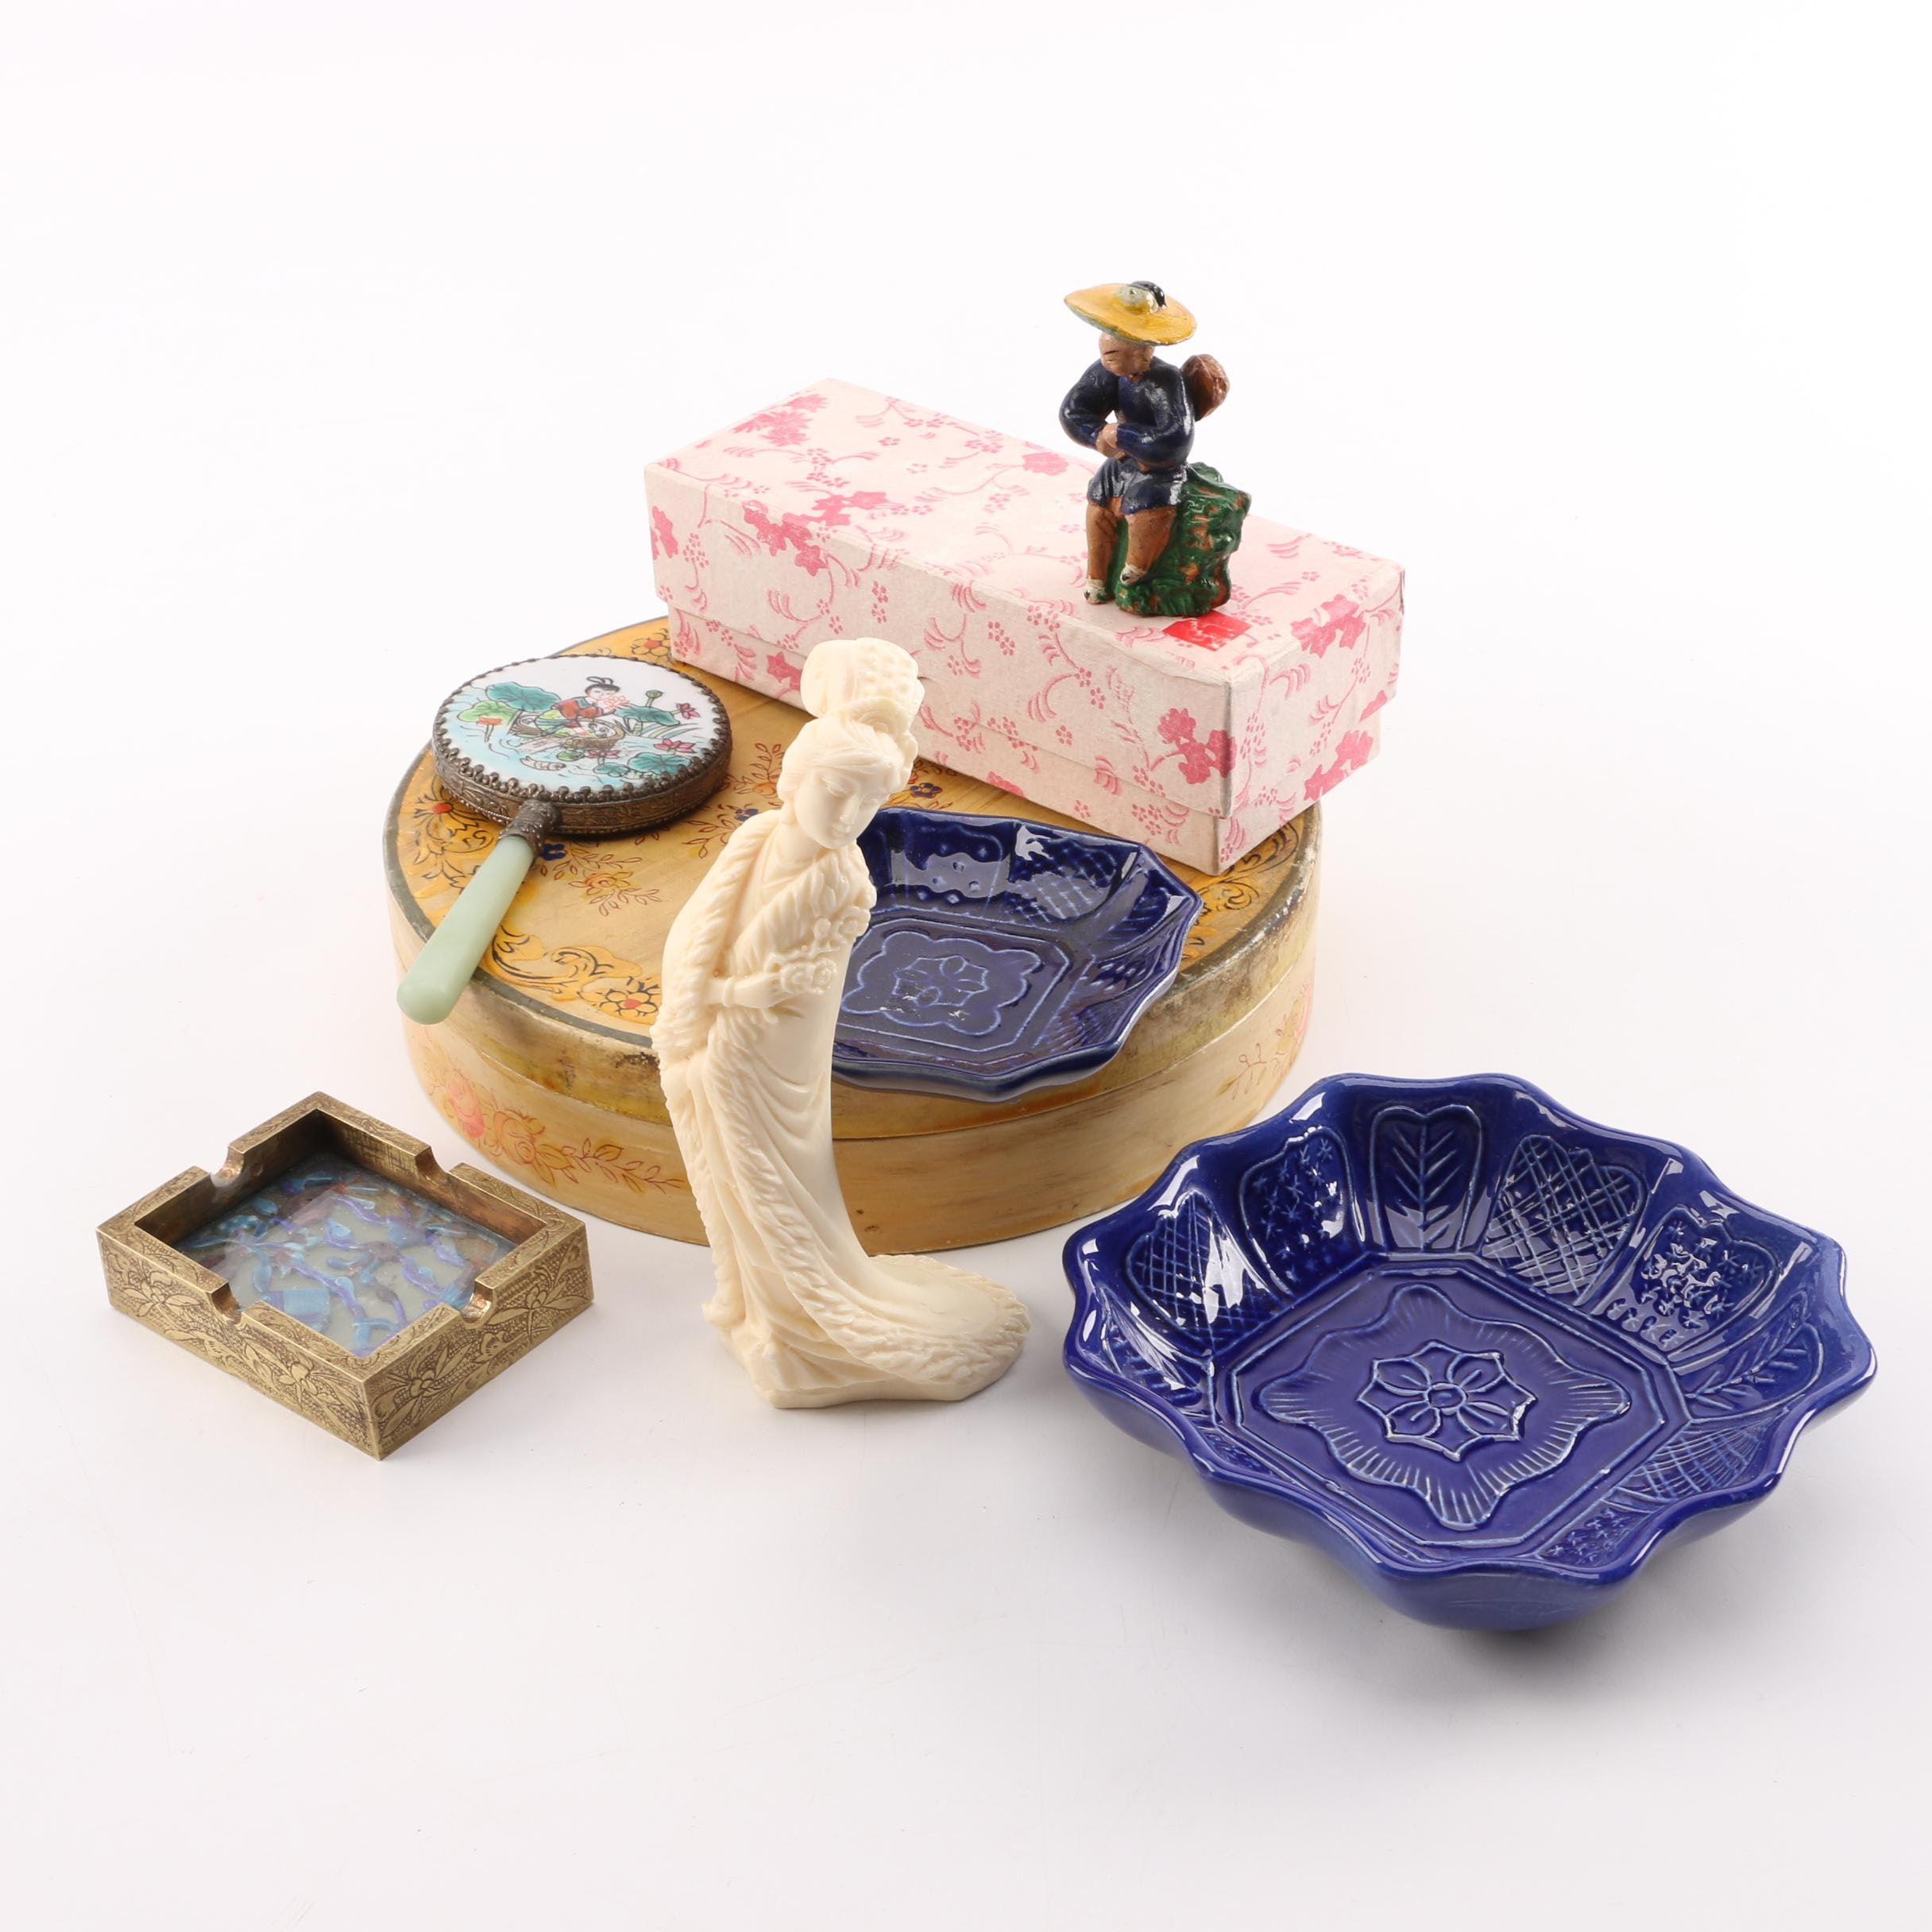 East Asian Figurines, Ashtray, Hand Mirror, and Dishes